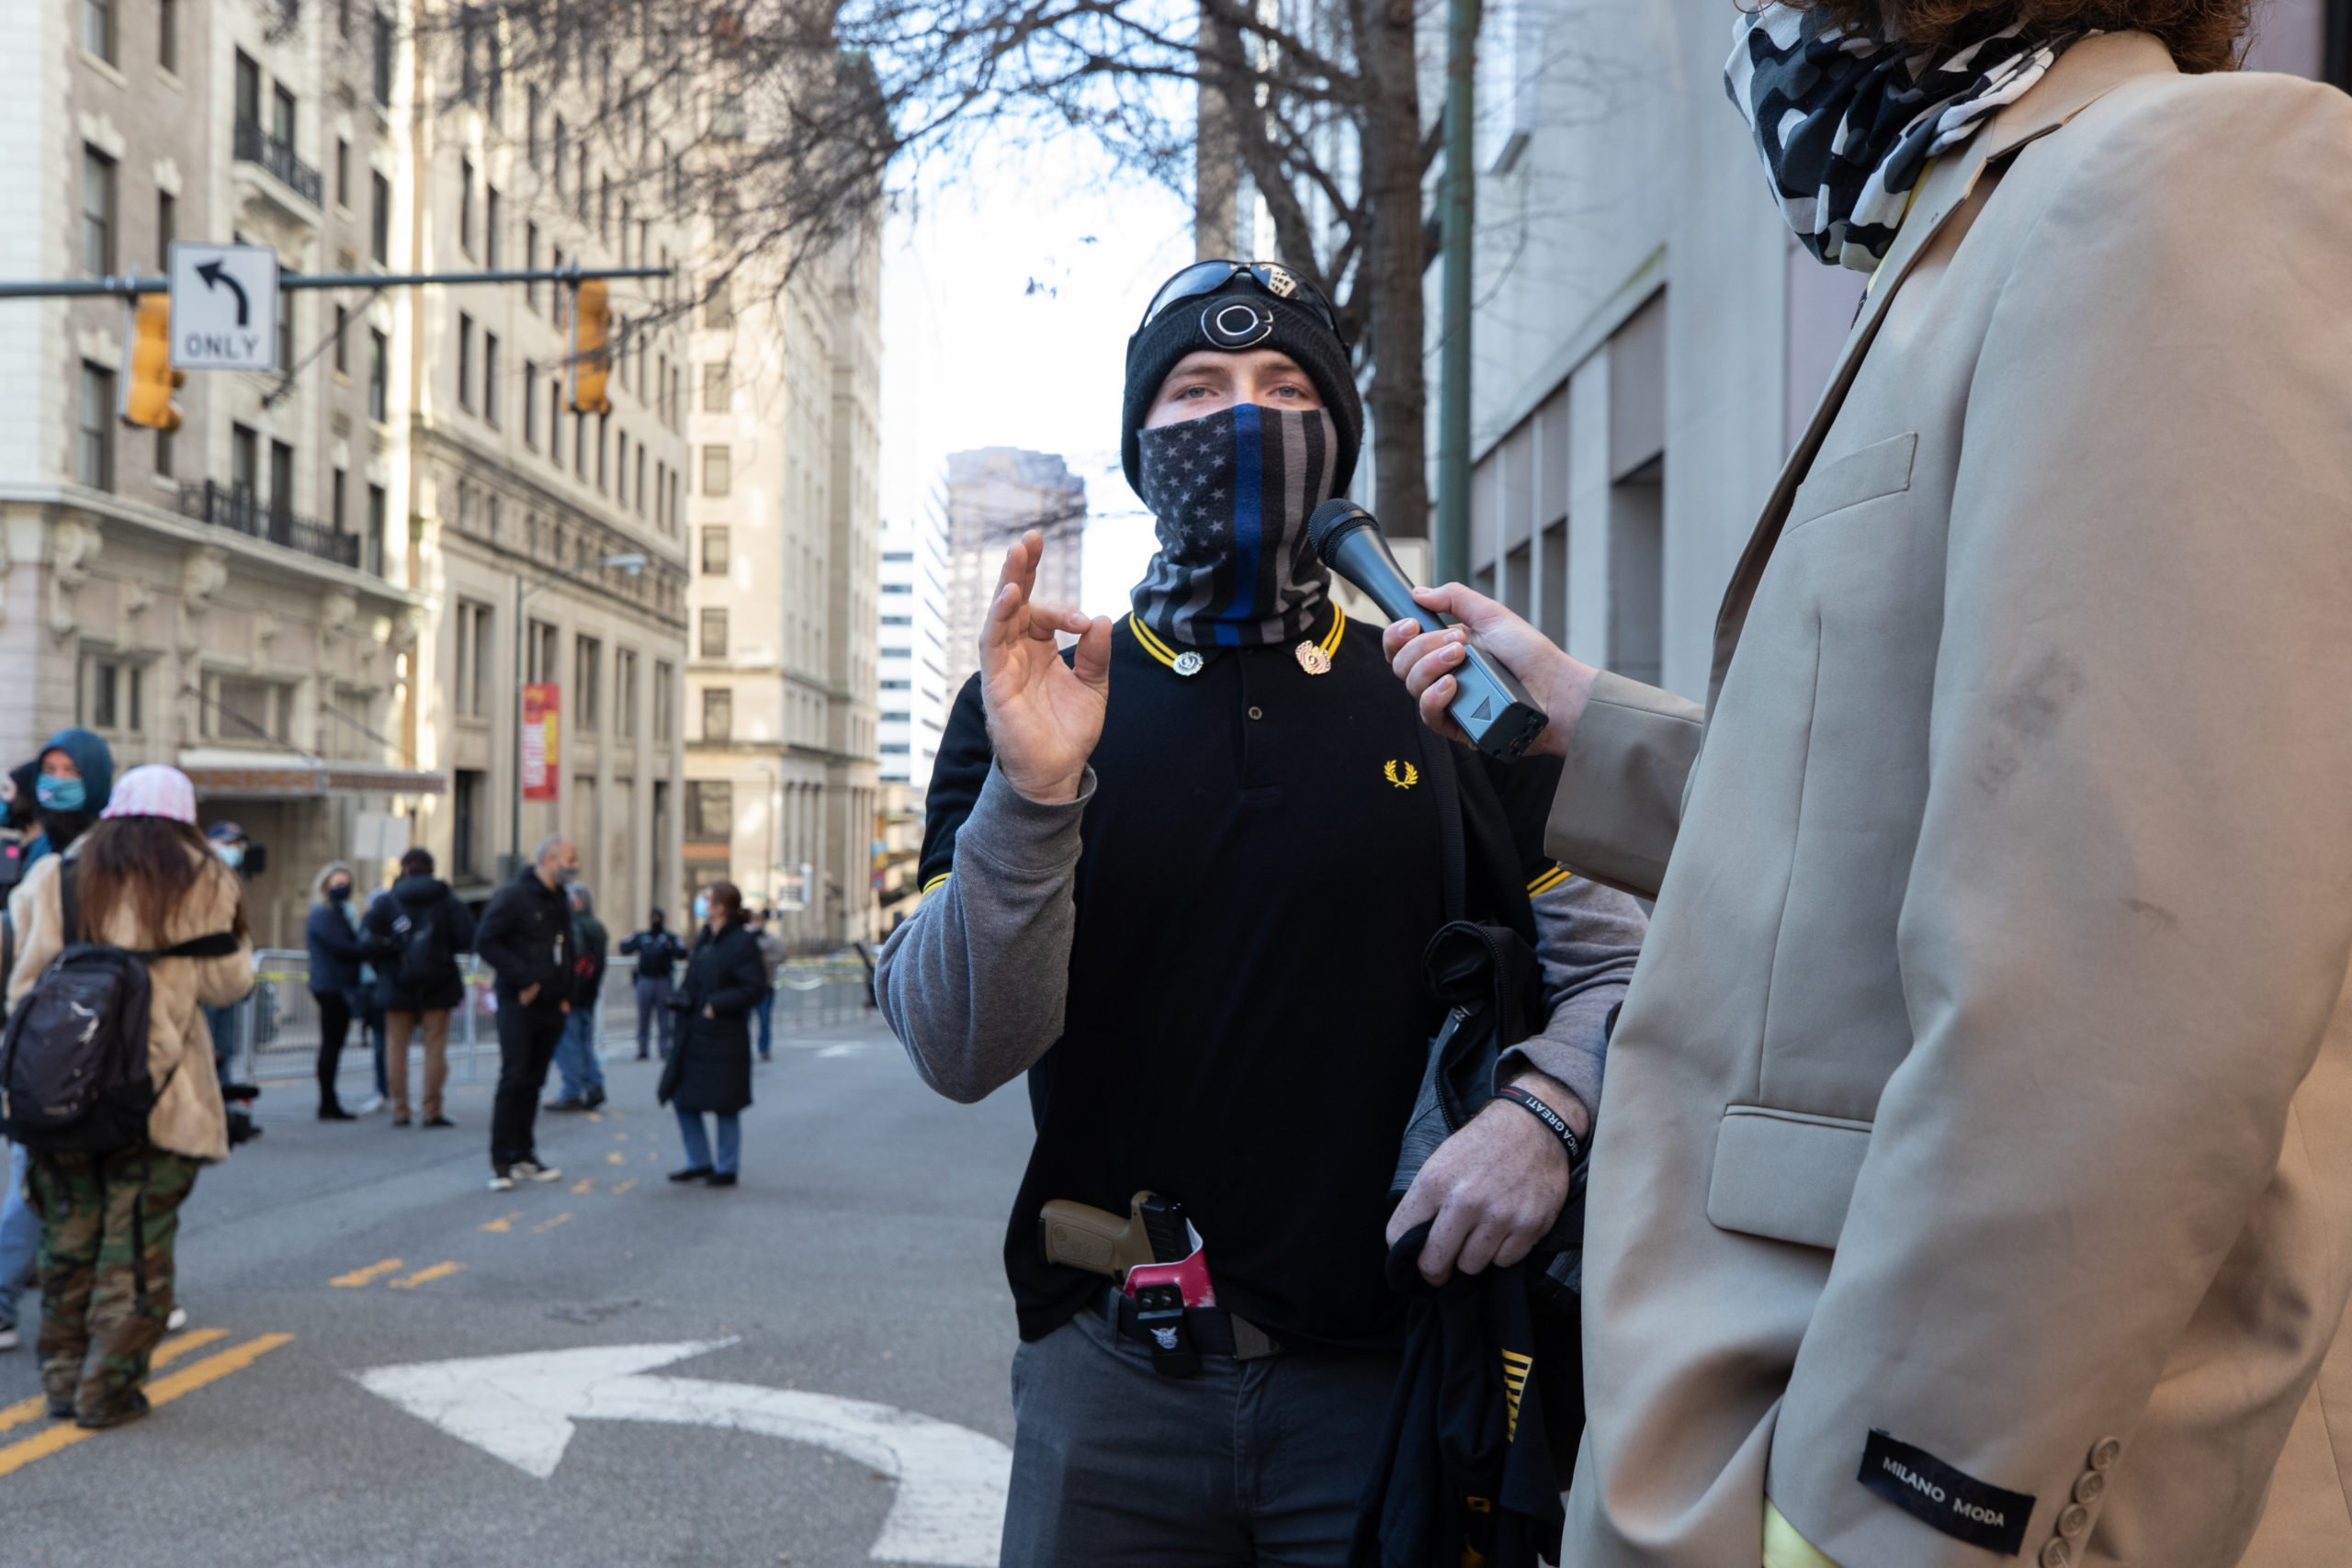 """An armed Proud Boy made a hand gesture while wearing a """"thin blue line"""" face mask, a Proud Boy polo shirt, and a holstered handgun in Richmond, Virginia on January 18, 2021. (Kaylee Greenlee - Daily Caller News Foundation)"""